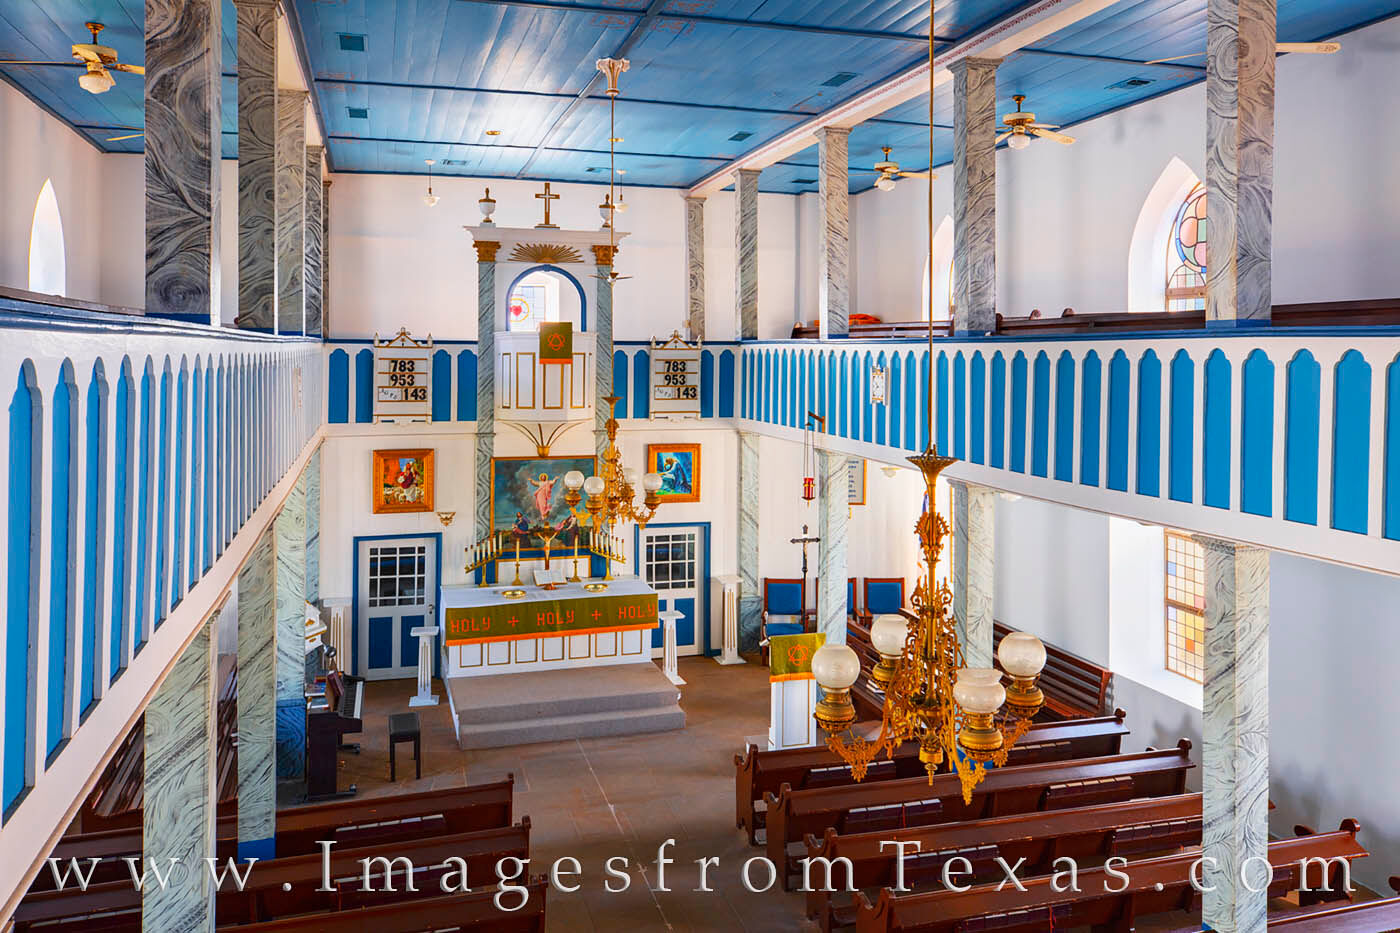 Taken from the corner of the balcony, this view shows St. Paul Lutheran Church in Serbin, Texas. As one of the famed and historical...